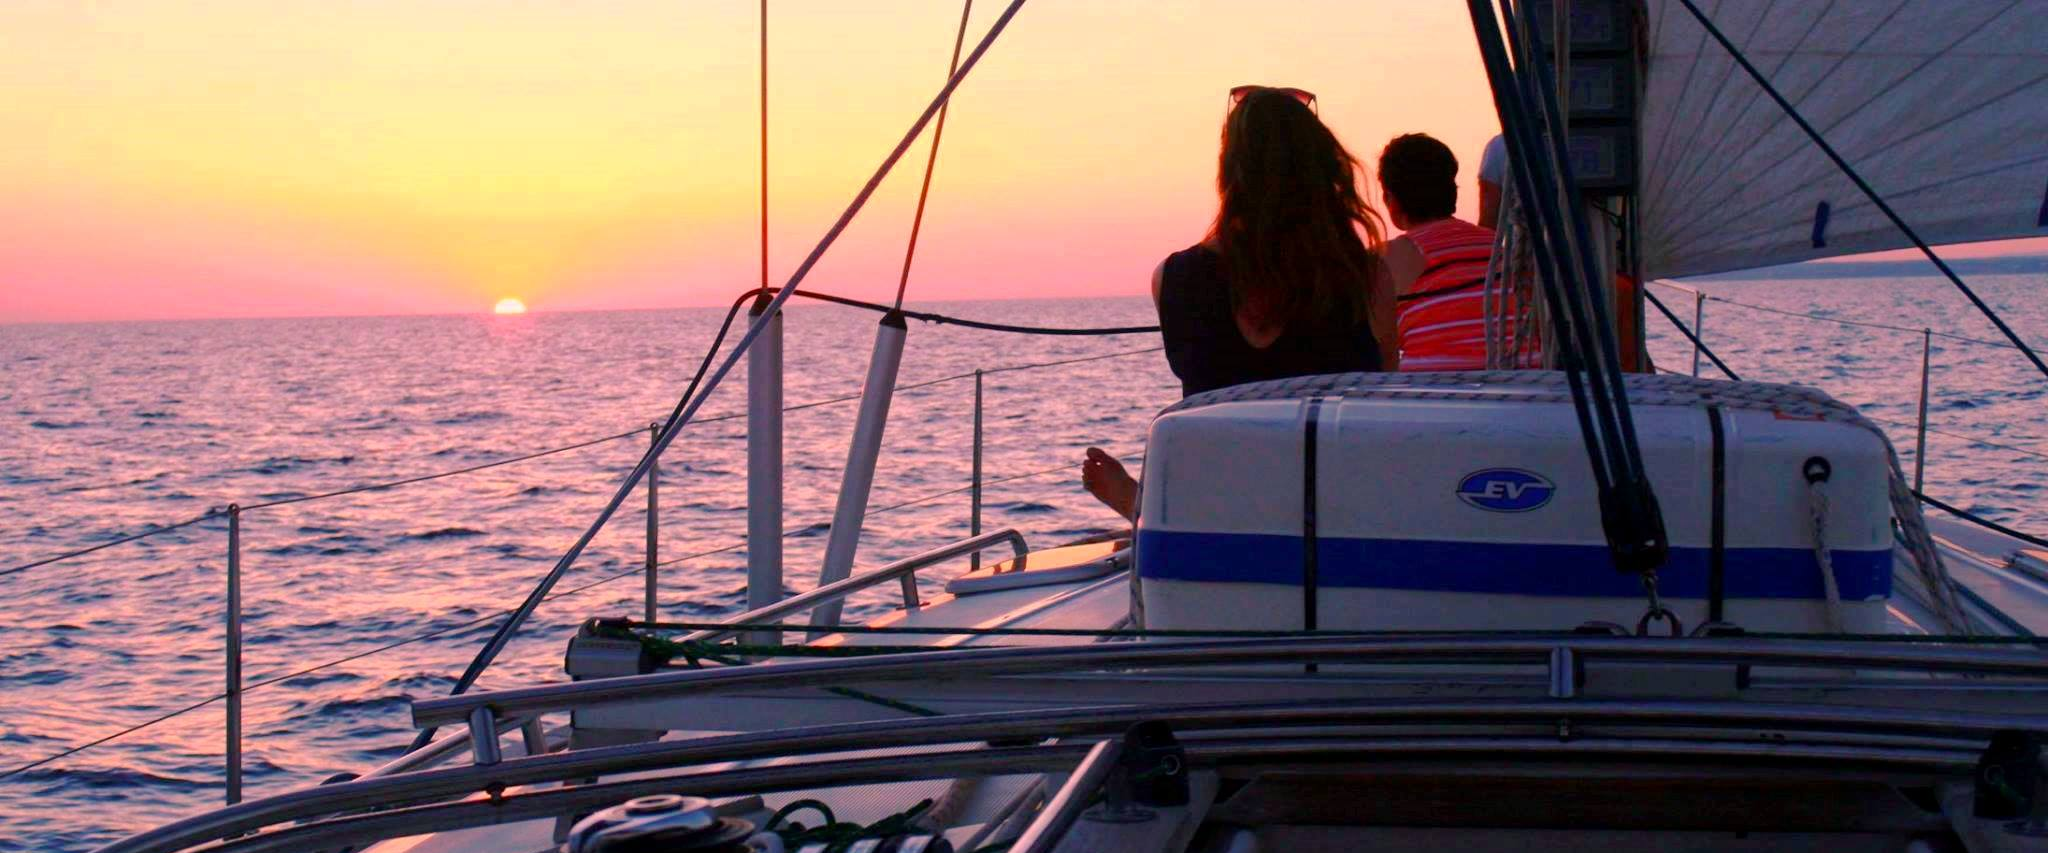 Sunset sailing in Majorca